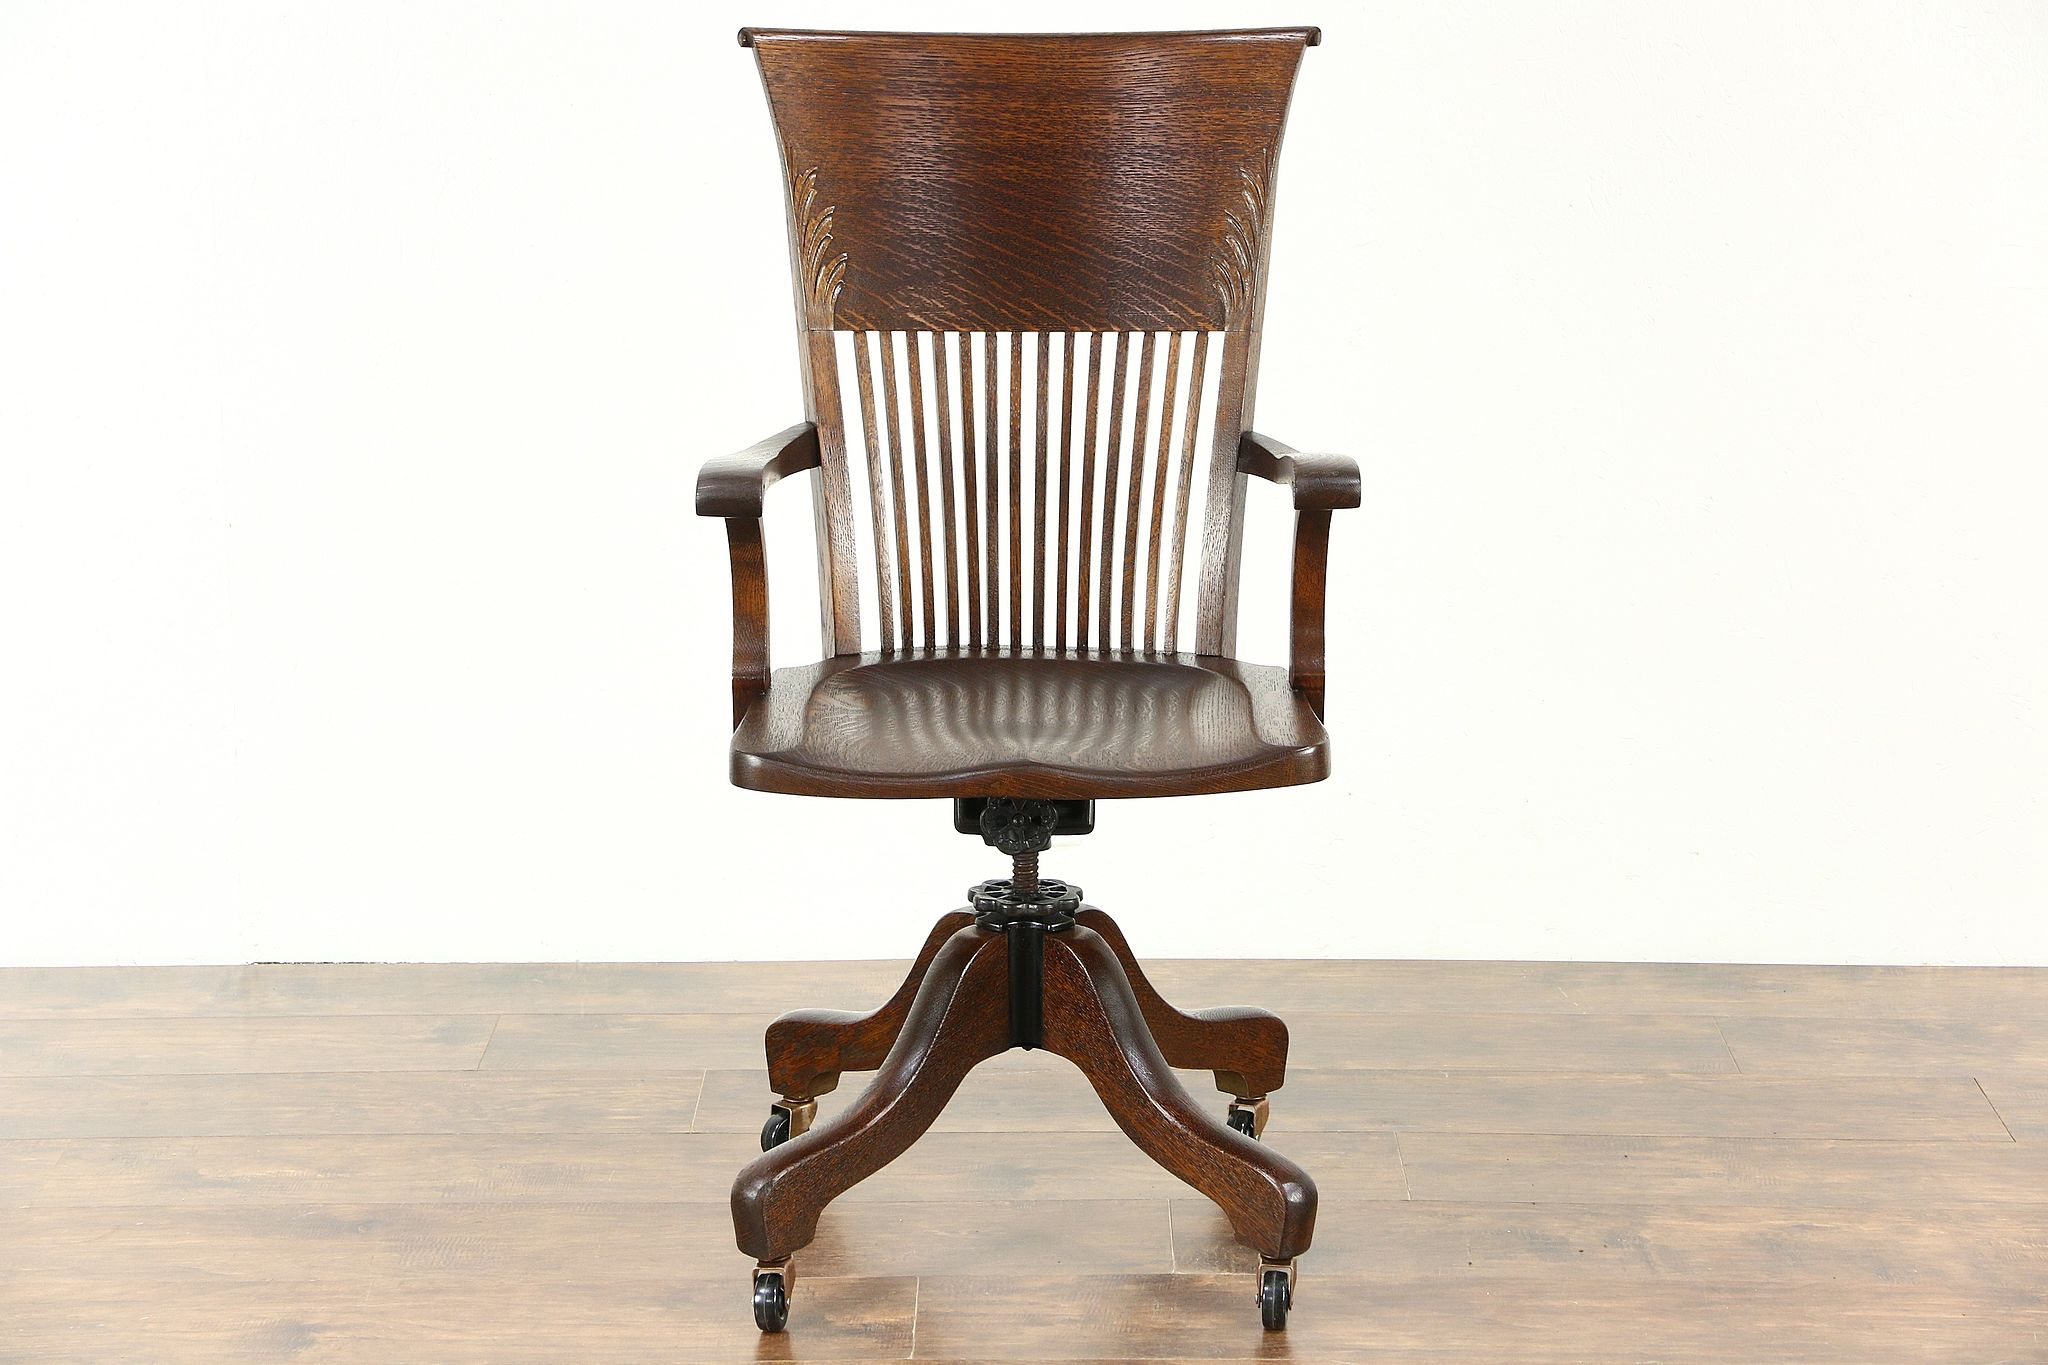 Oak Antique Swivel Adjustable Desk Chair  Arms   Wheels  SignedSOLD Chairs  Office and Desk   Harp Gallery Antiques. Antique Wooden Office Chairs With Casters. Home Design Ideas